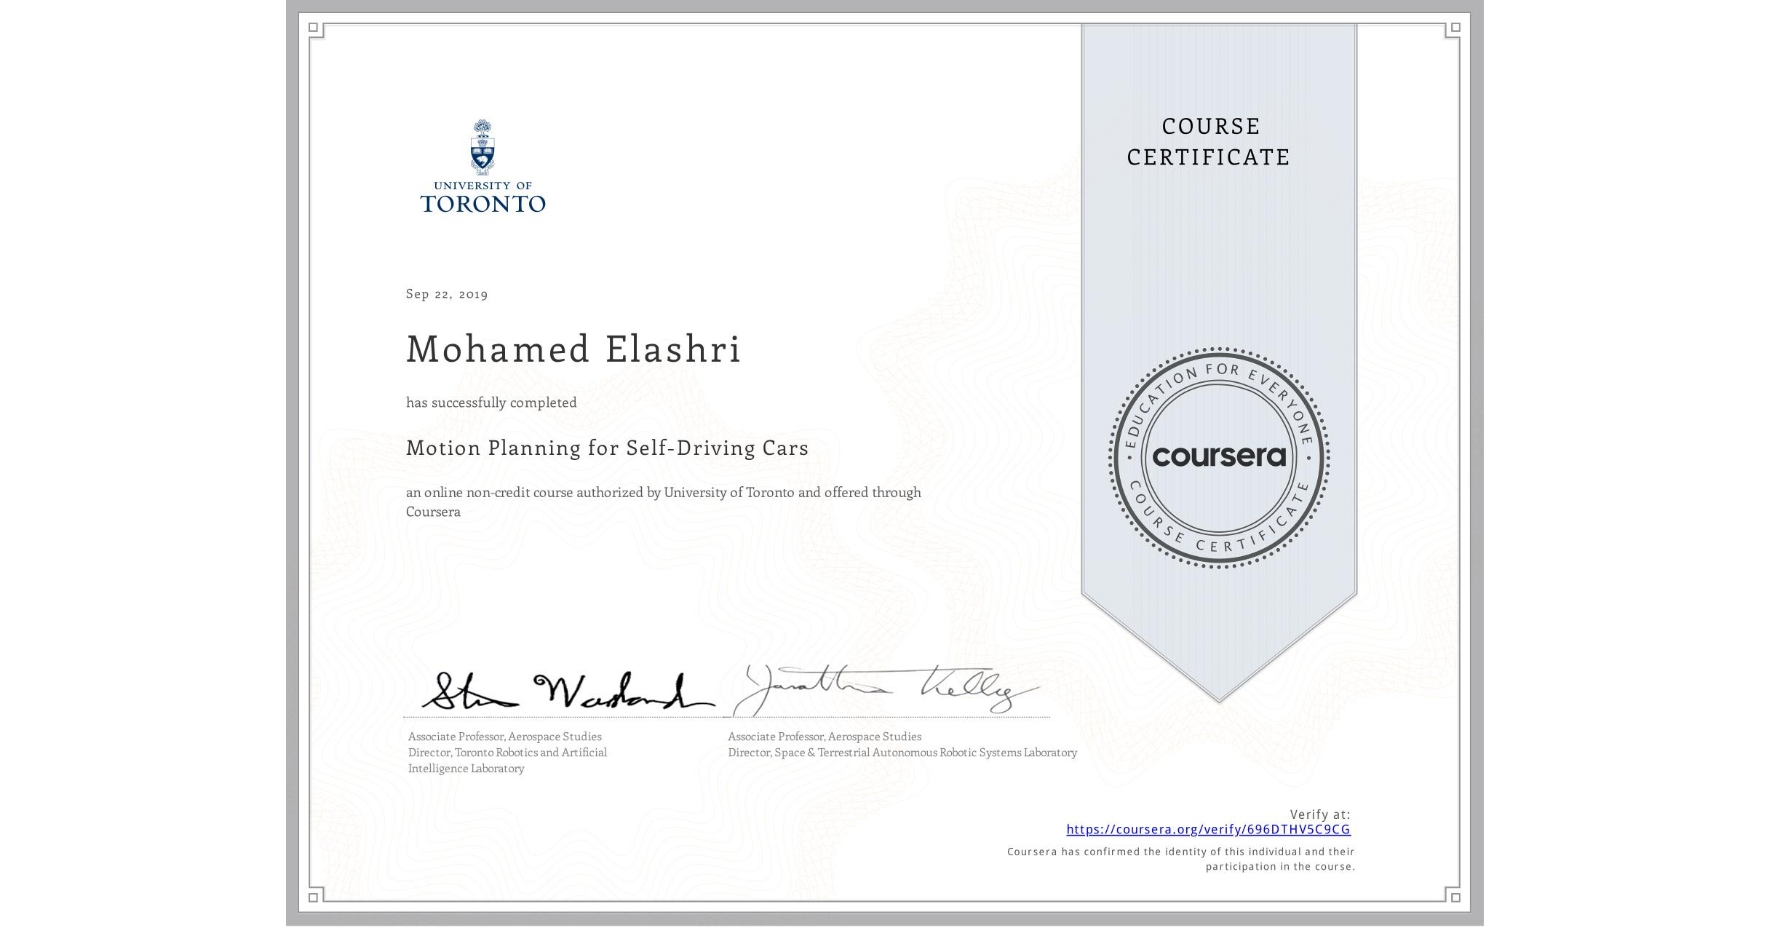 View certificate for Mohamed Elashri, Motion Planning for Self-Driving Cars, an online non-credit course authorized by University of Toronto and offered through Coursera